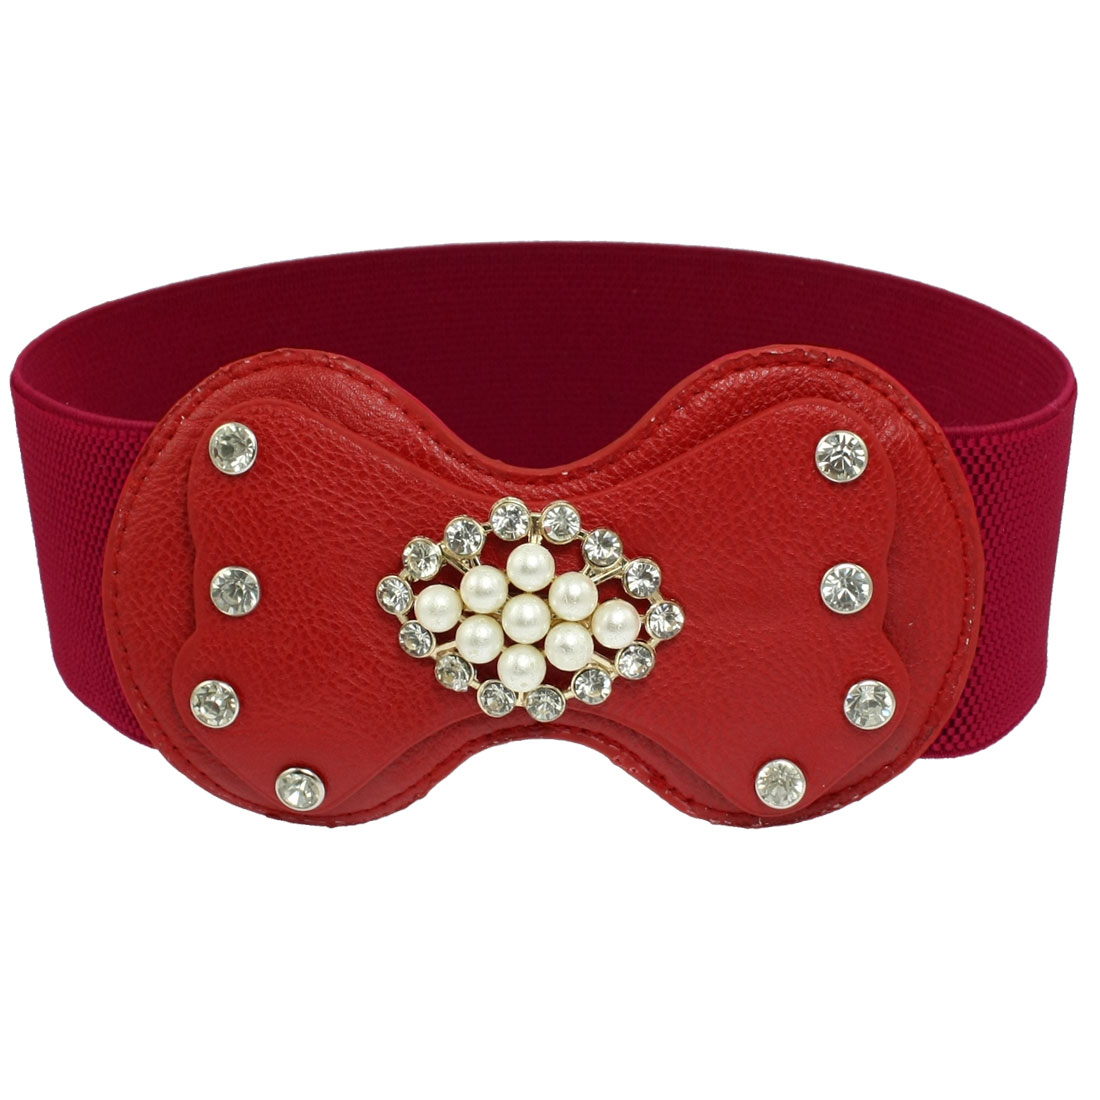 Lady Faux Leather Bowknot Buckle Faux Pearl Accent Stretchy Waist Belt Red